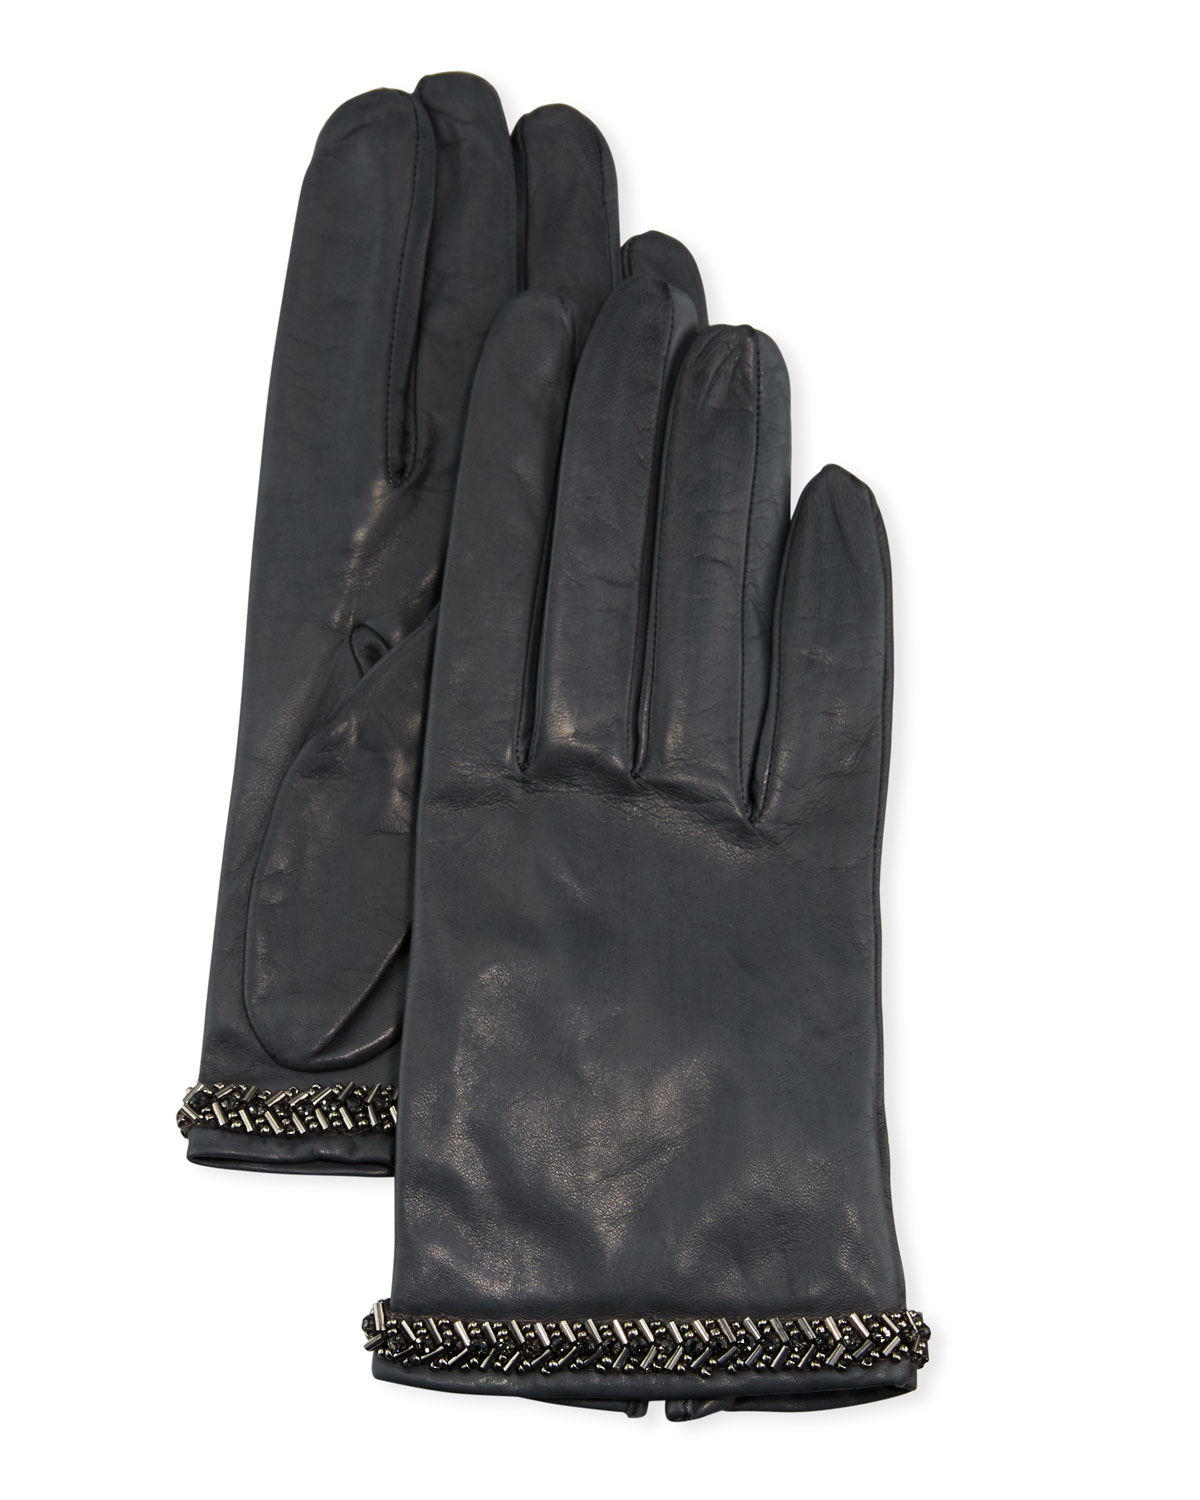 Portolano Gloves NAPA LEATHER SILK-LINED GLOVES W/ BEADED CUFFS